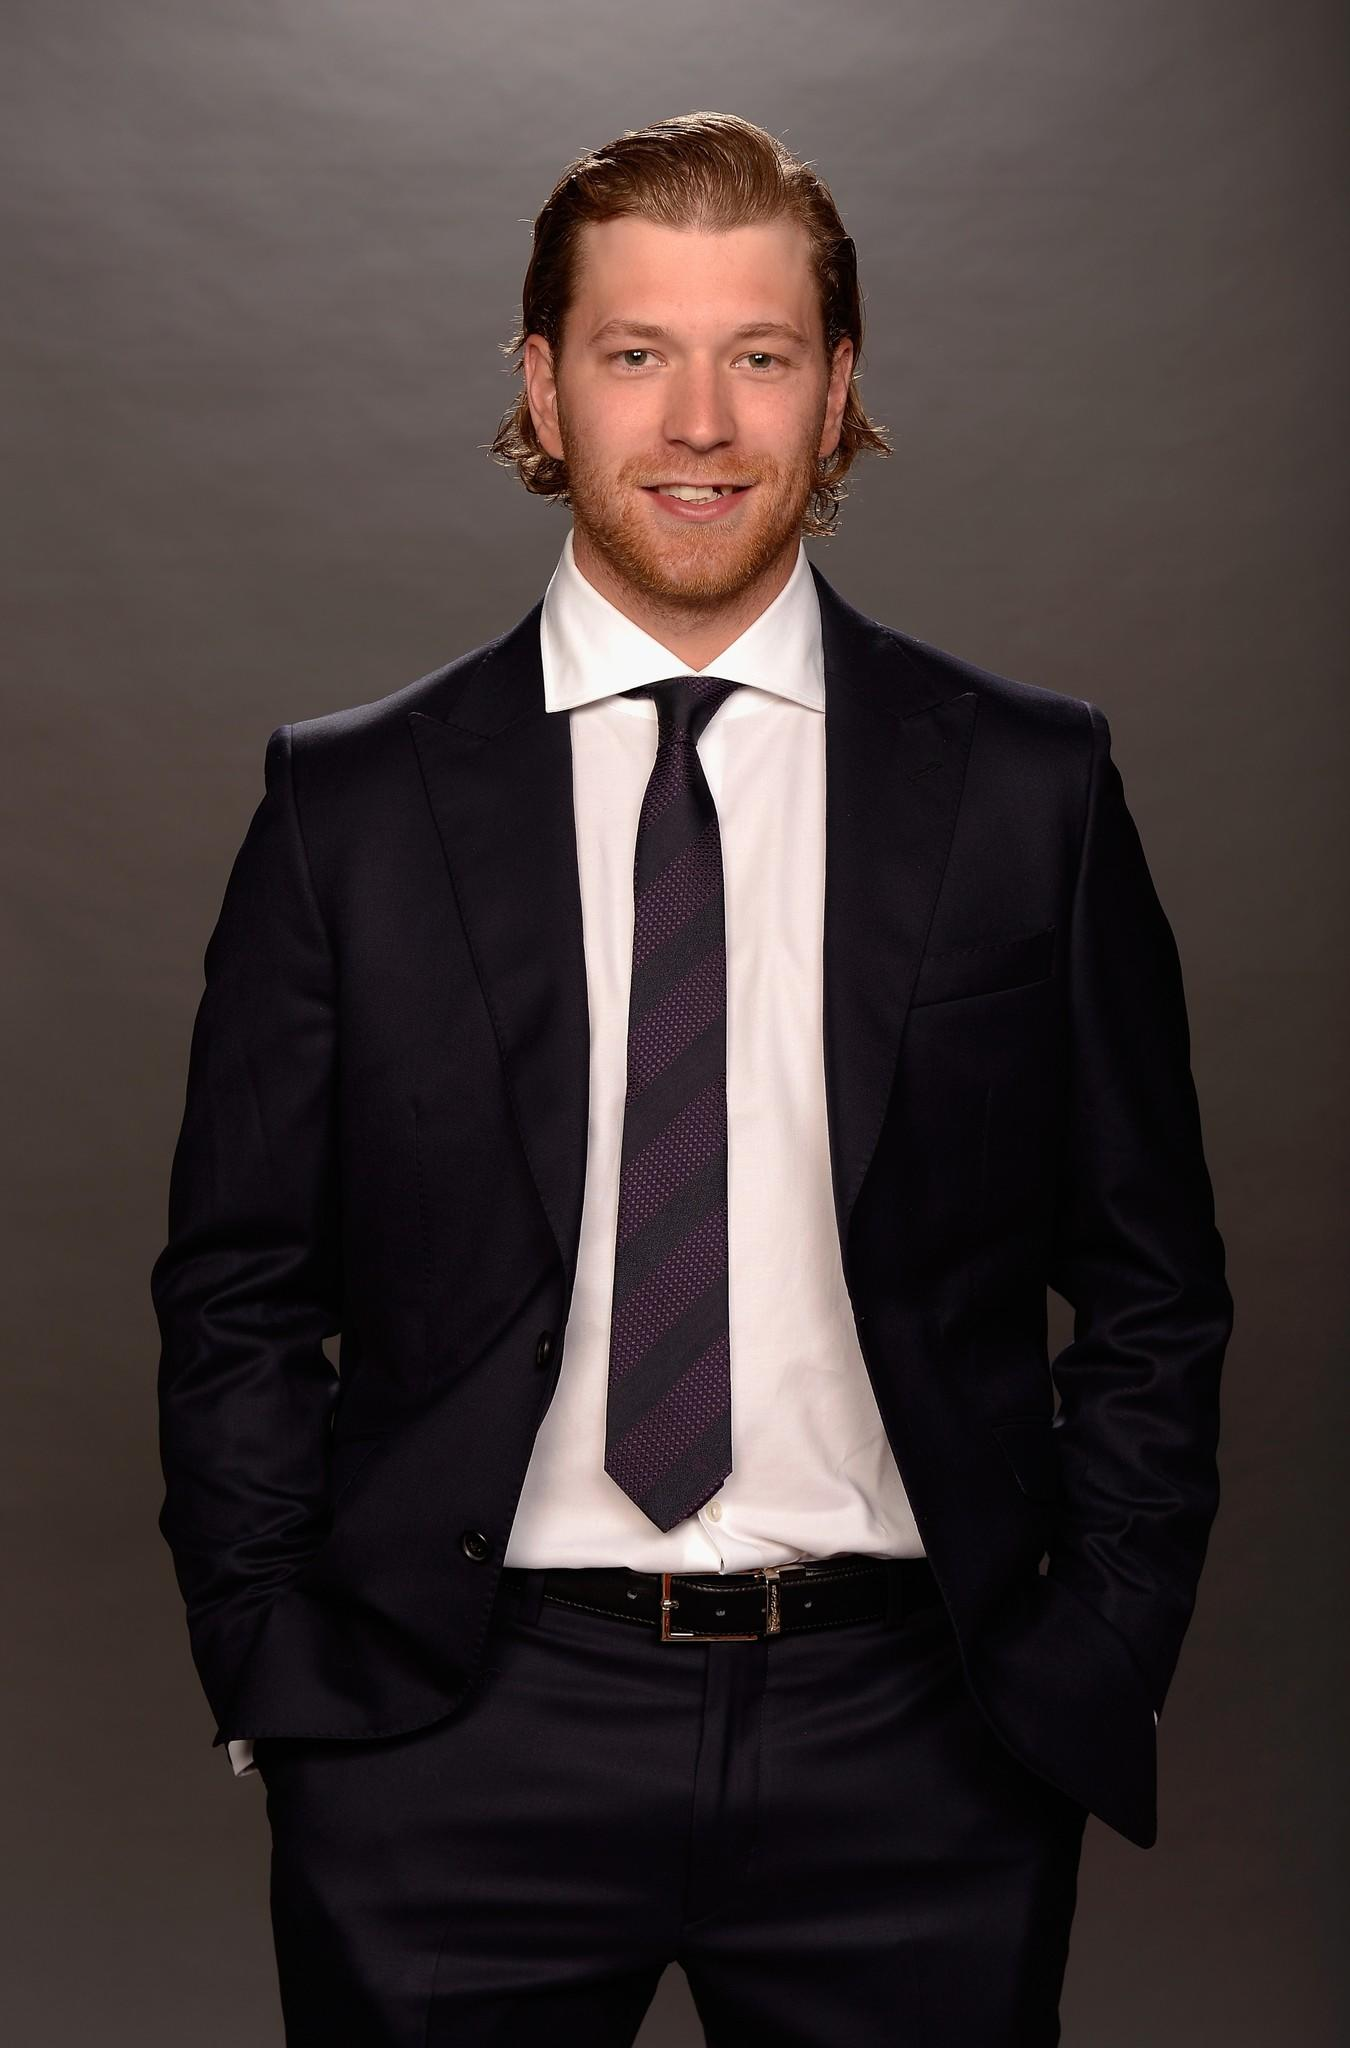 Claude Giroux of the Philadelphia Flyers poses for a portrait during the 2014 NHL Awards at Encore Las Vegas.